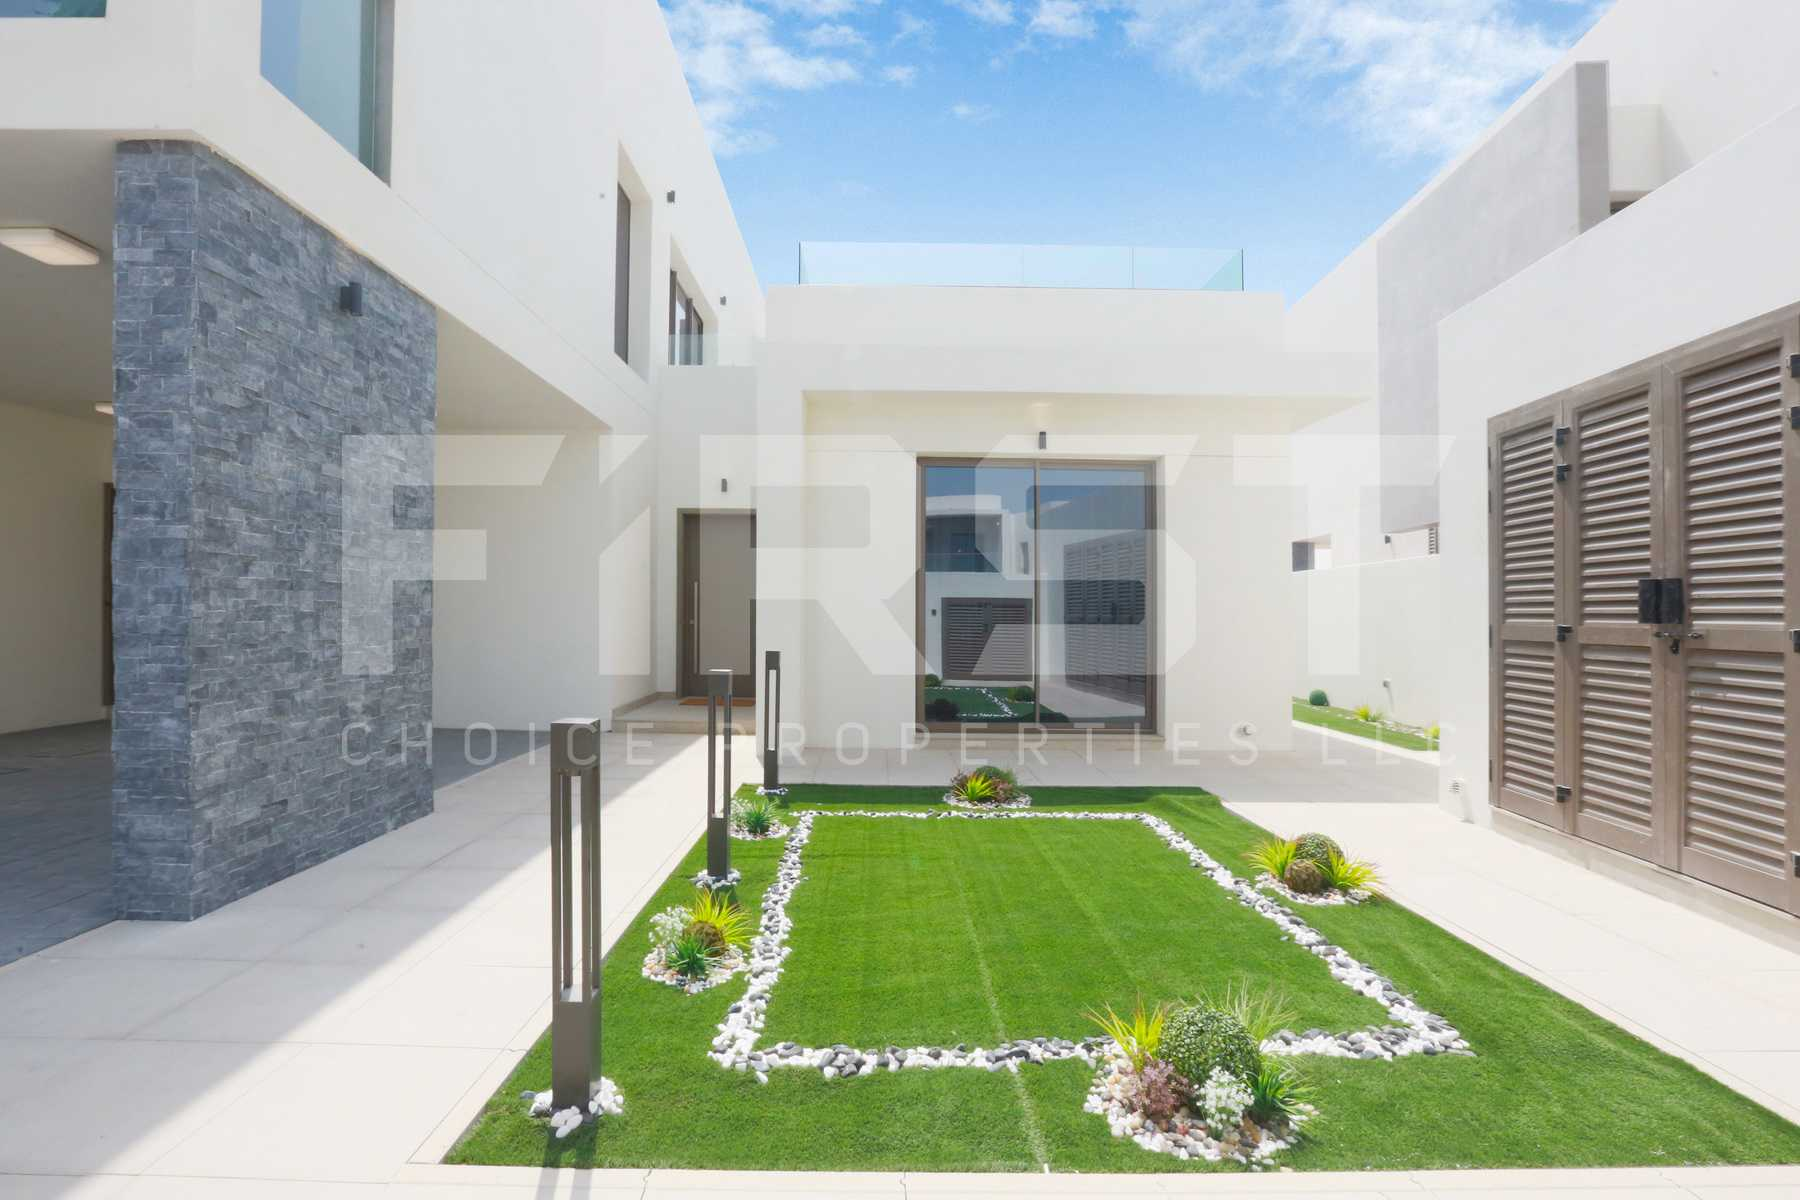 External Photo of 4 Bedroom Villa Type 4F in Yas Acres Yas Island Abu Dhabi UAE (11).jpg